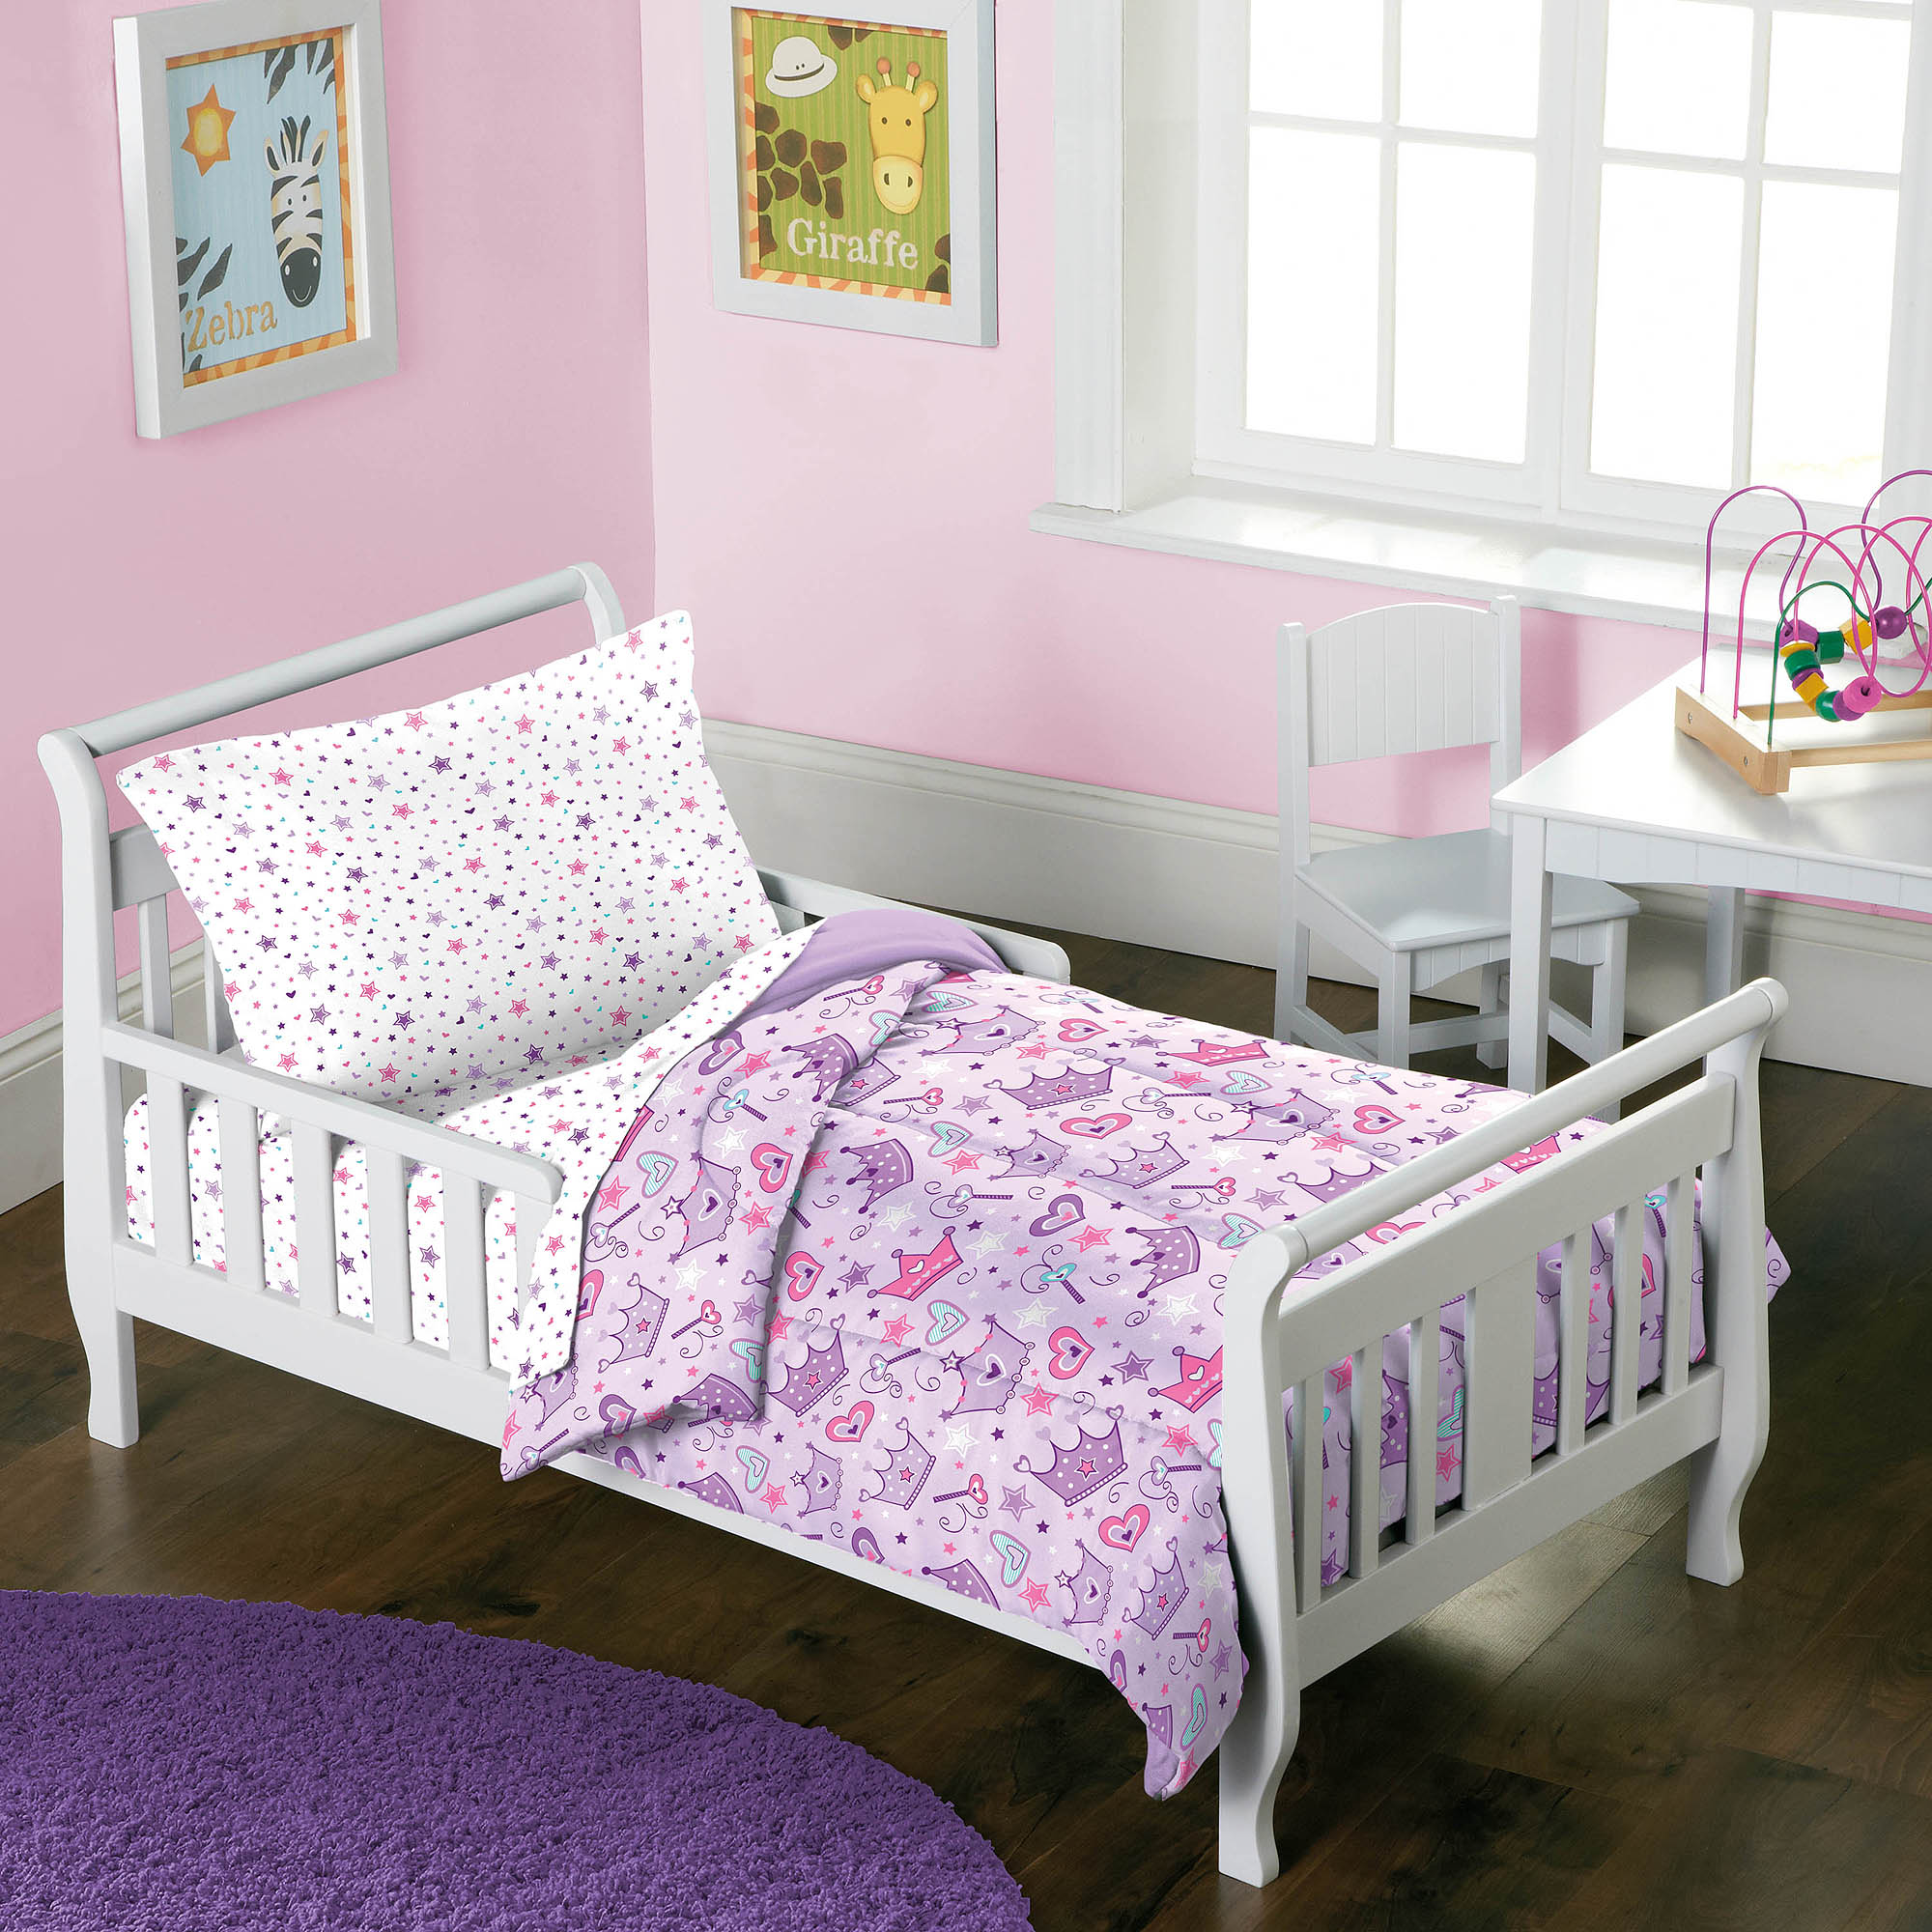 Dream Factory Stars Amp Crowns 4 Piece Toddler Bed In A Bag